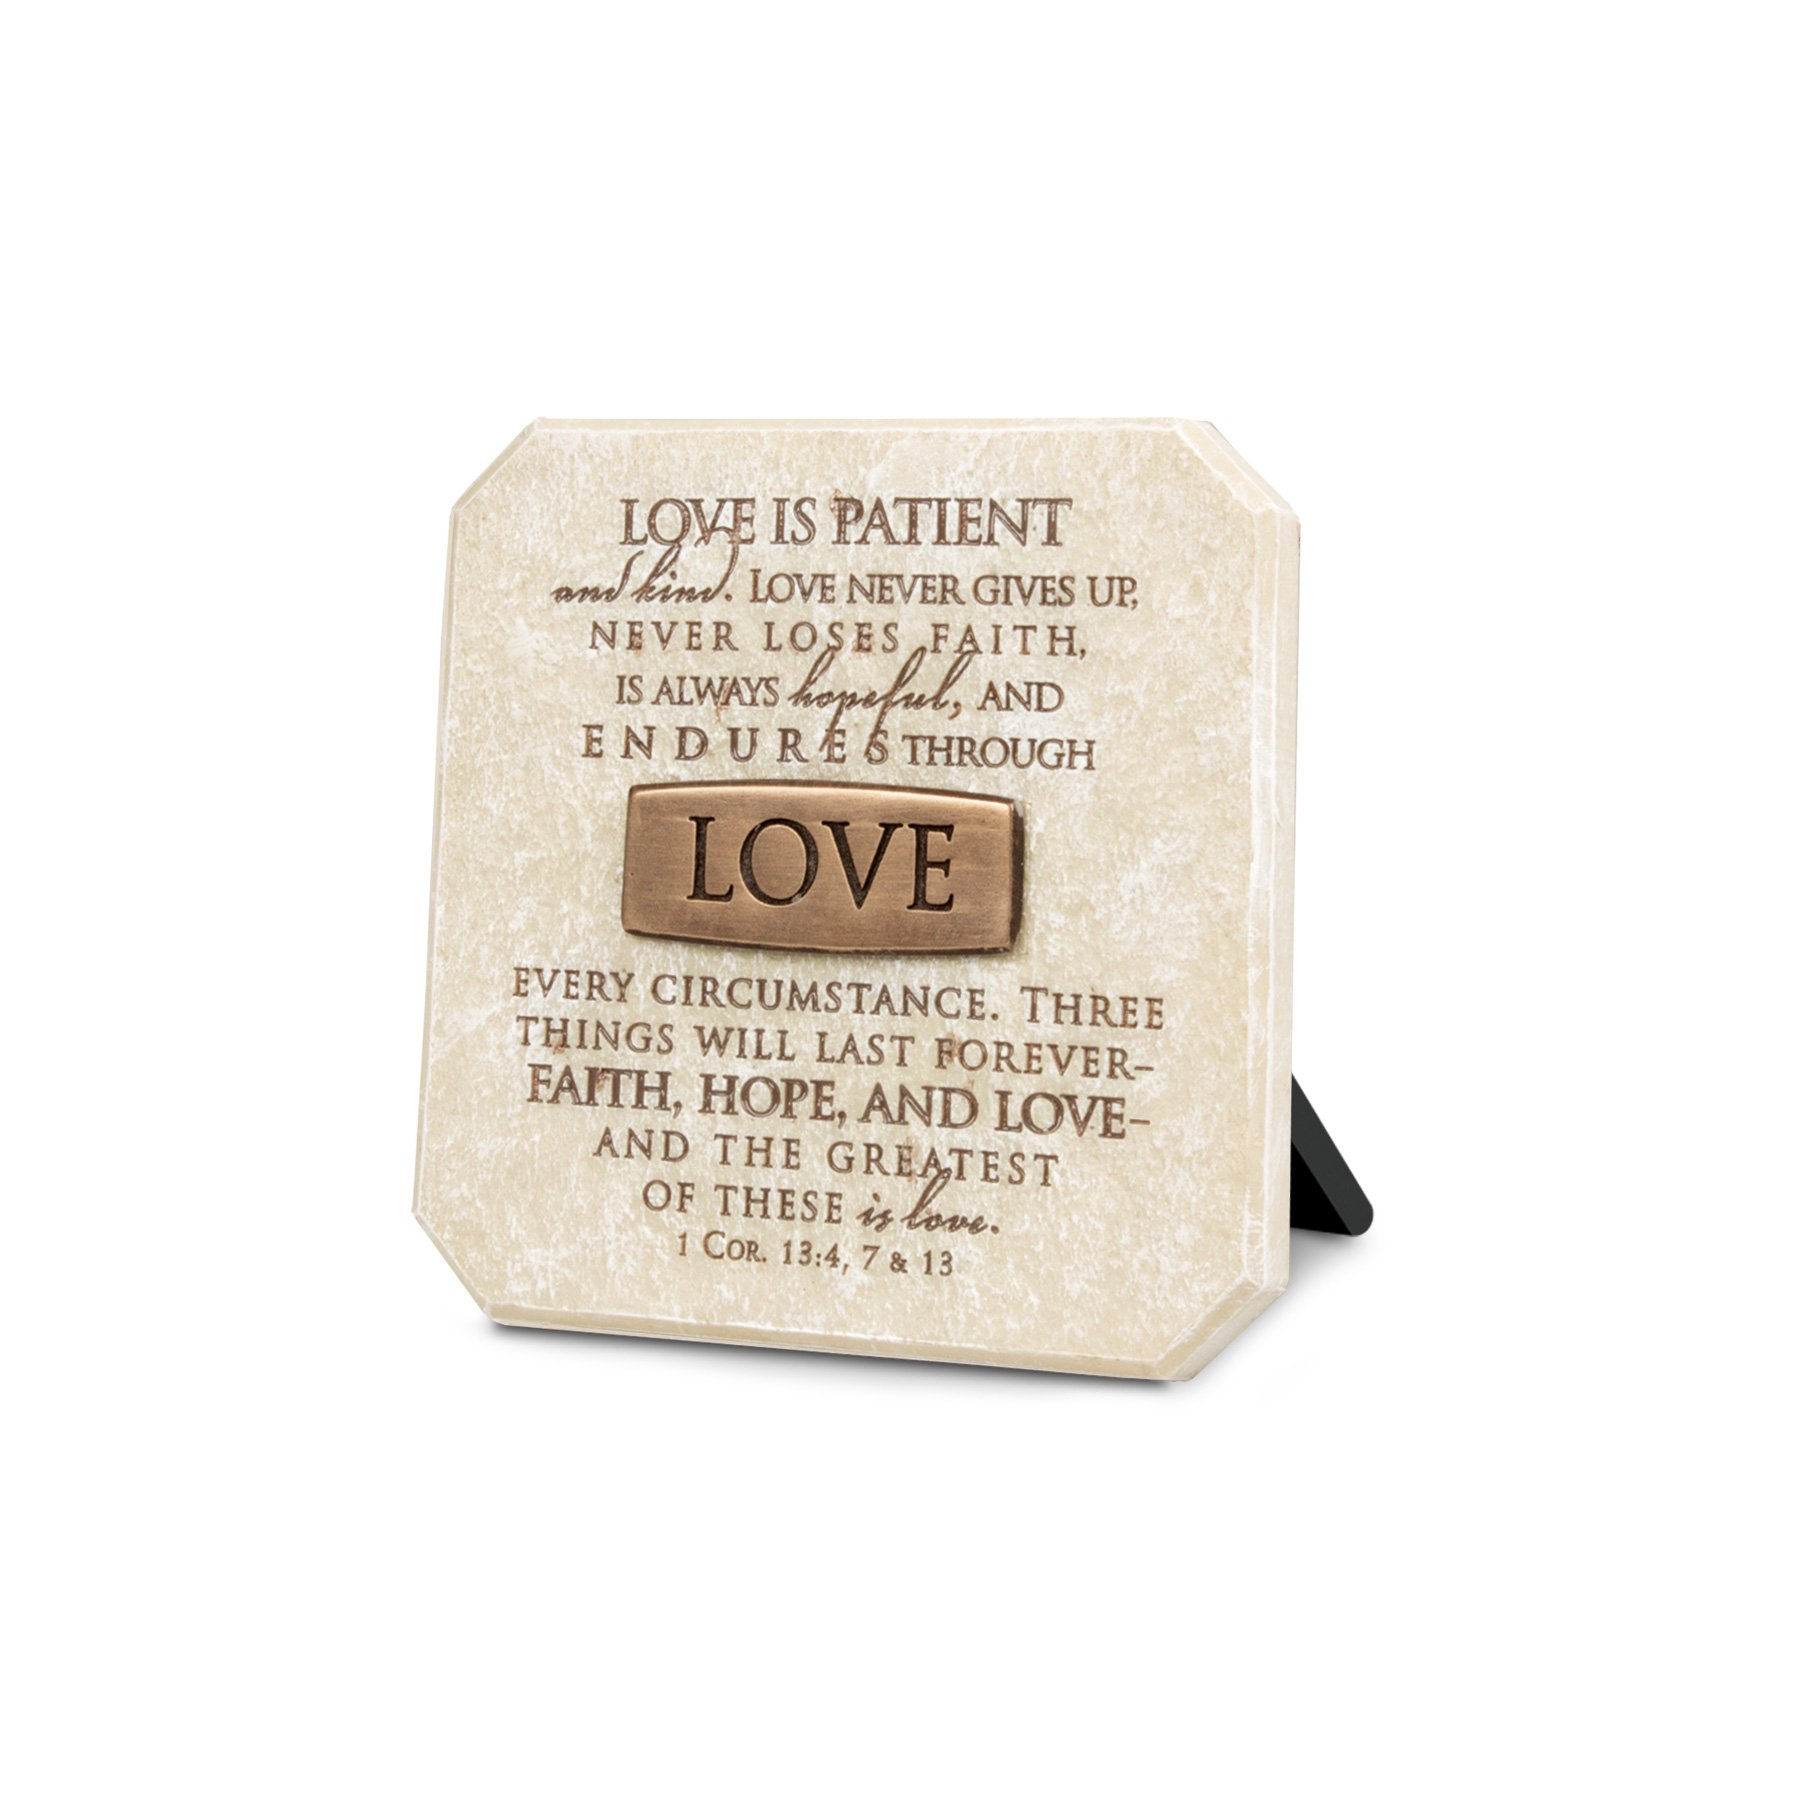 Lighthouse Christian Products Love Title Bar Plaque, 3 3/4 x 3 3/4'', Bronze